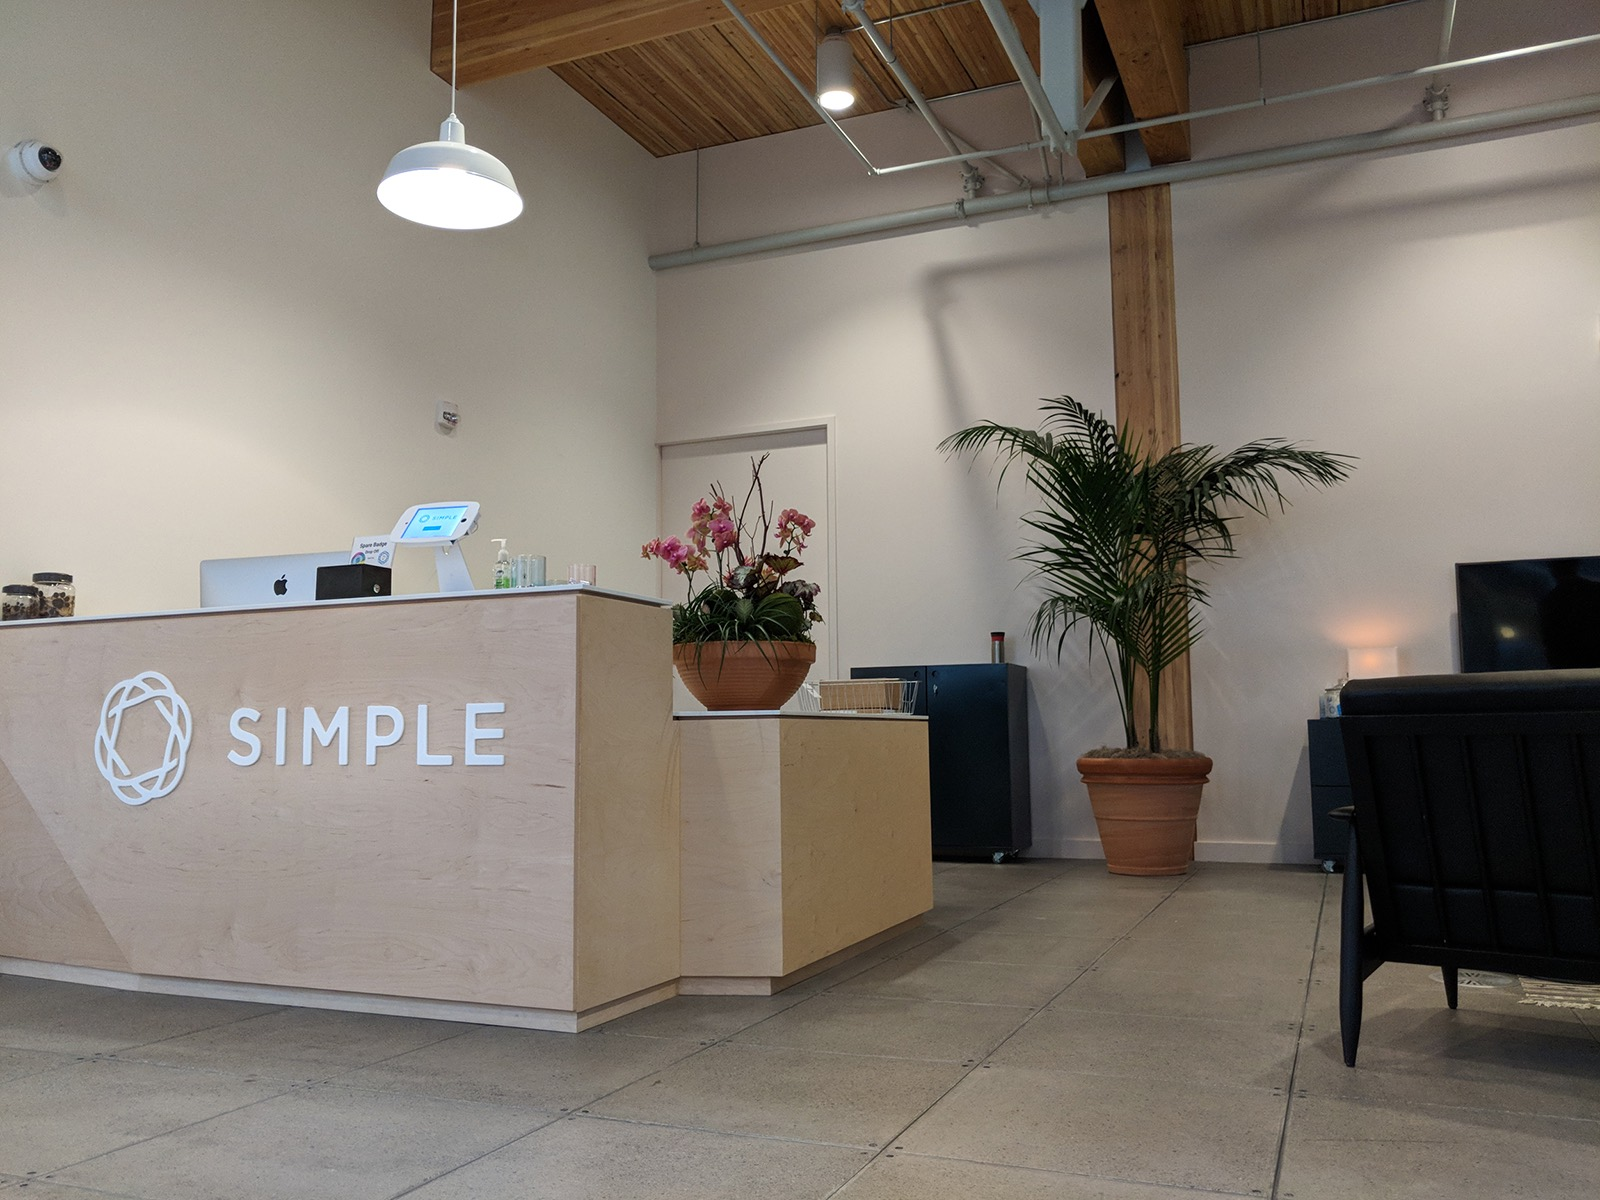 simple-portland-office-6